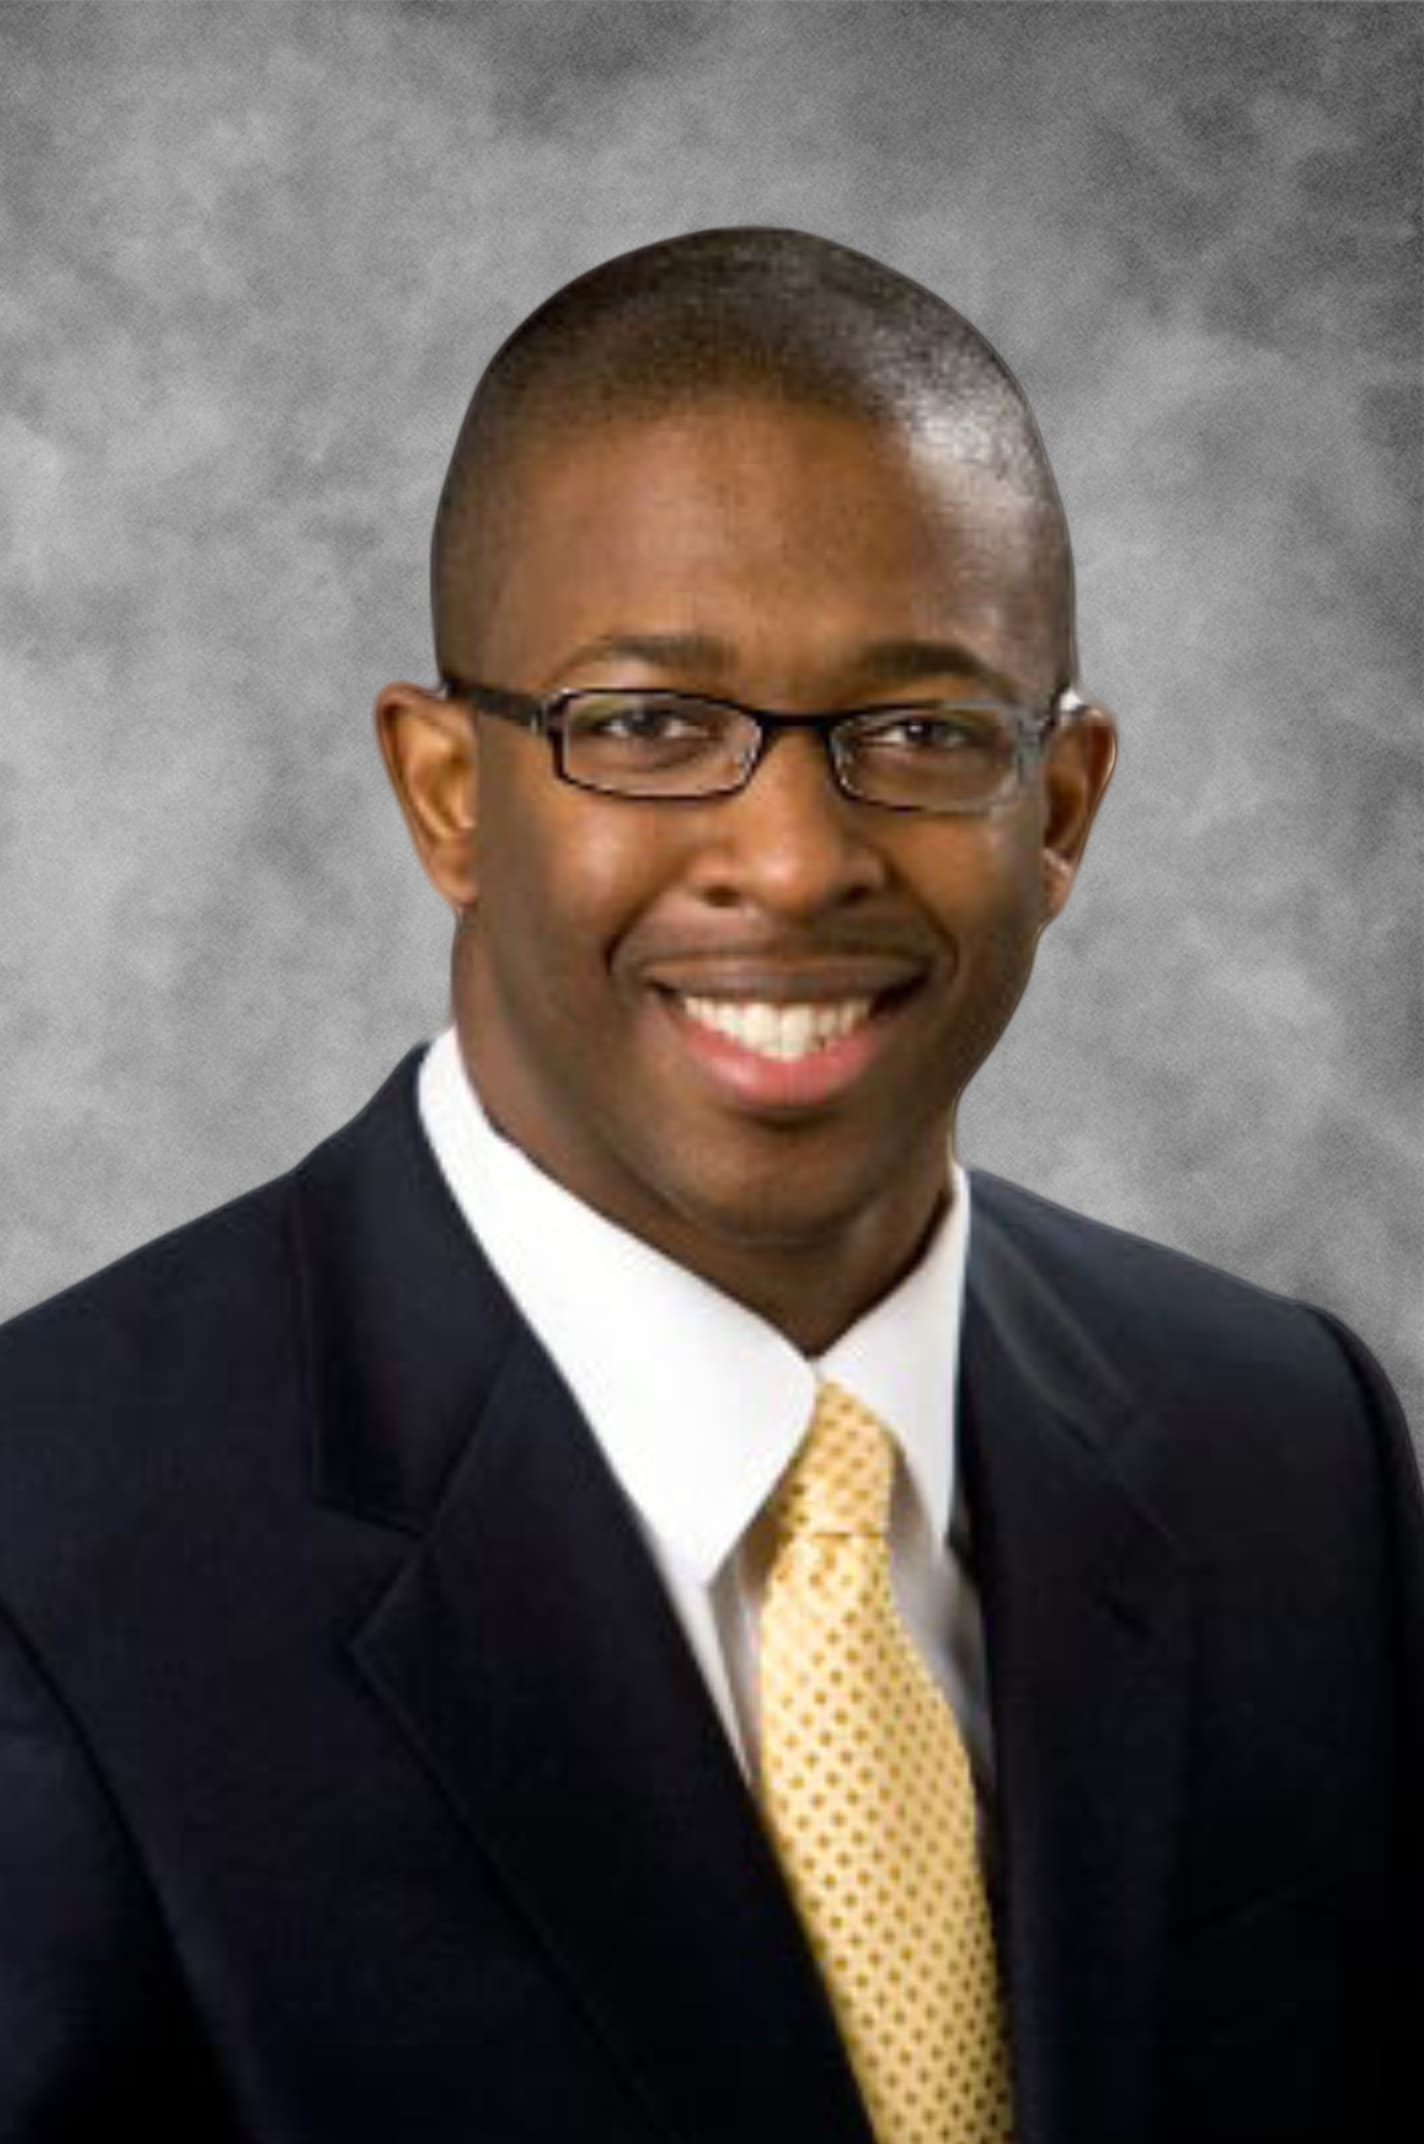 Dr. Terrence T Crowder MD